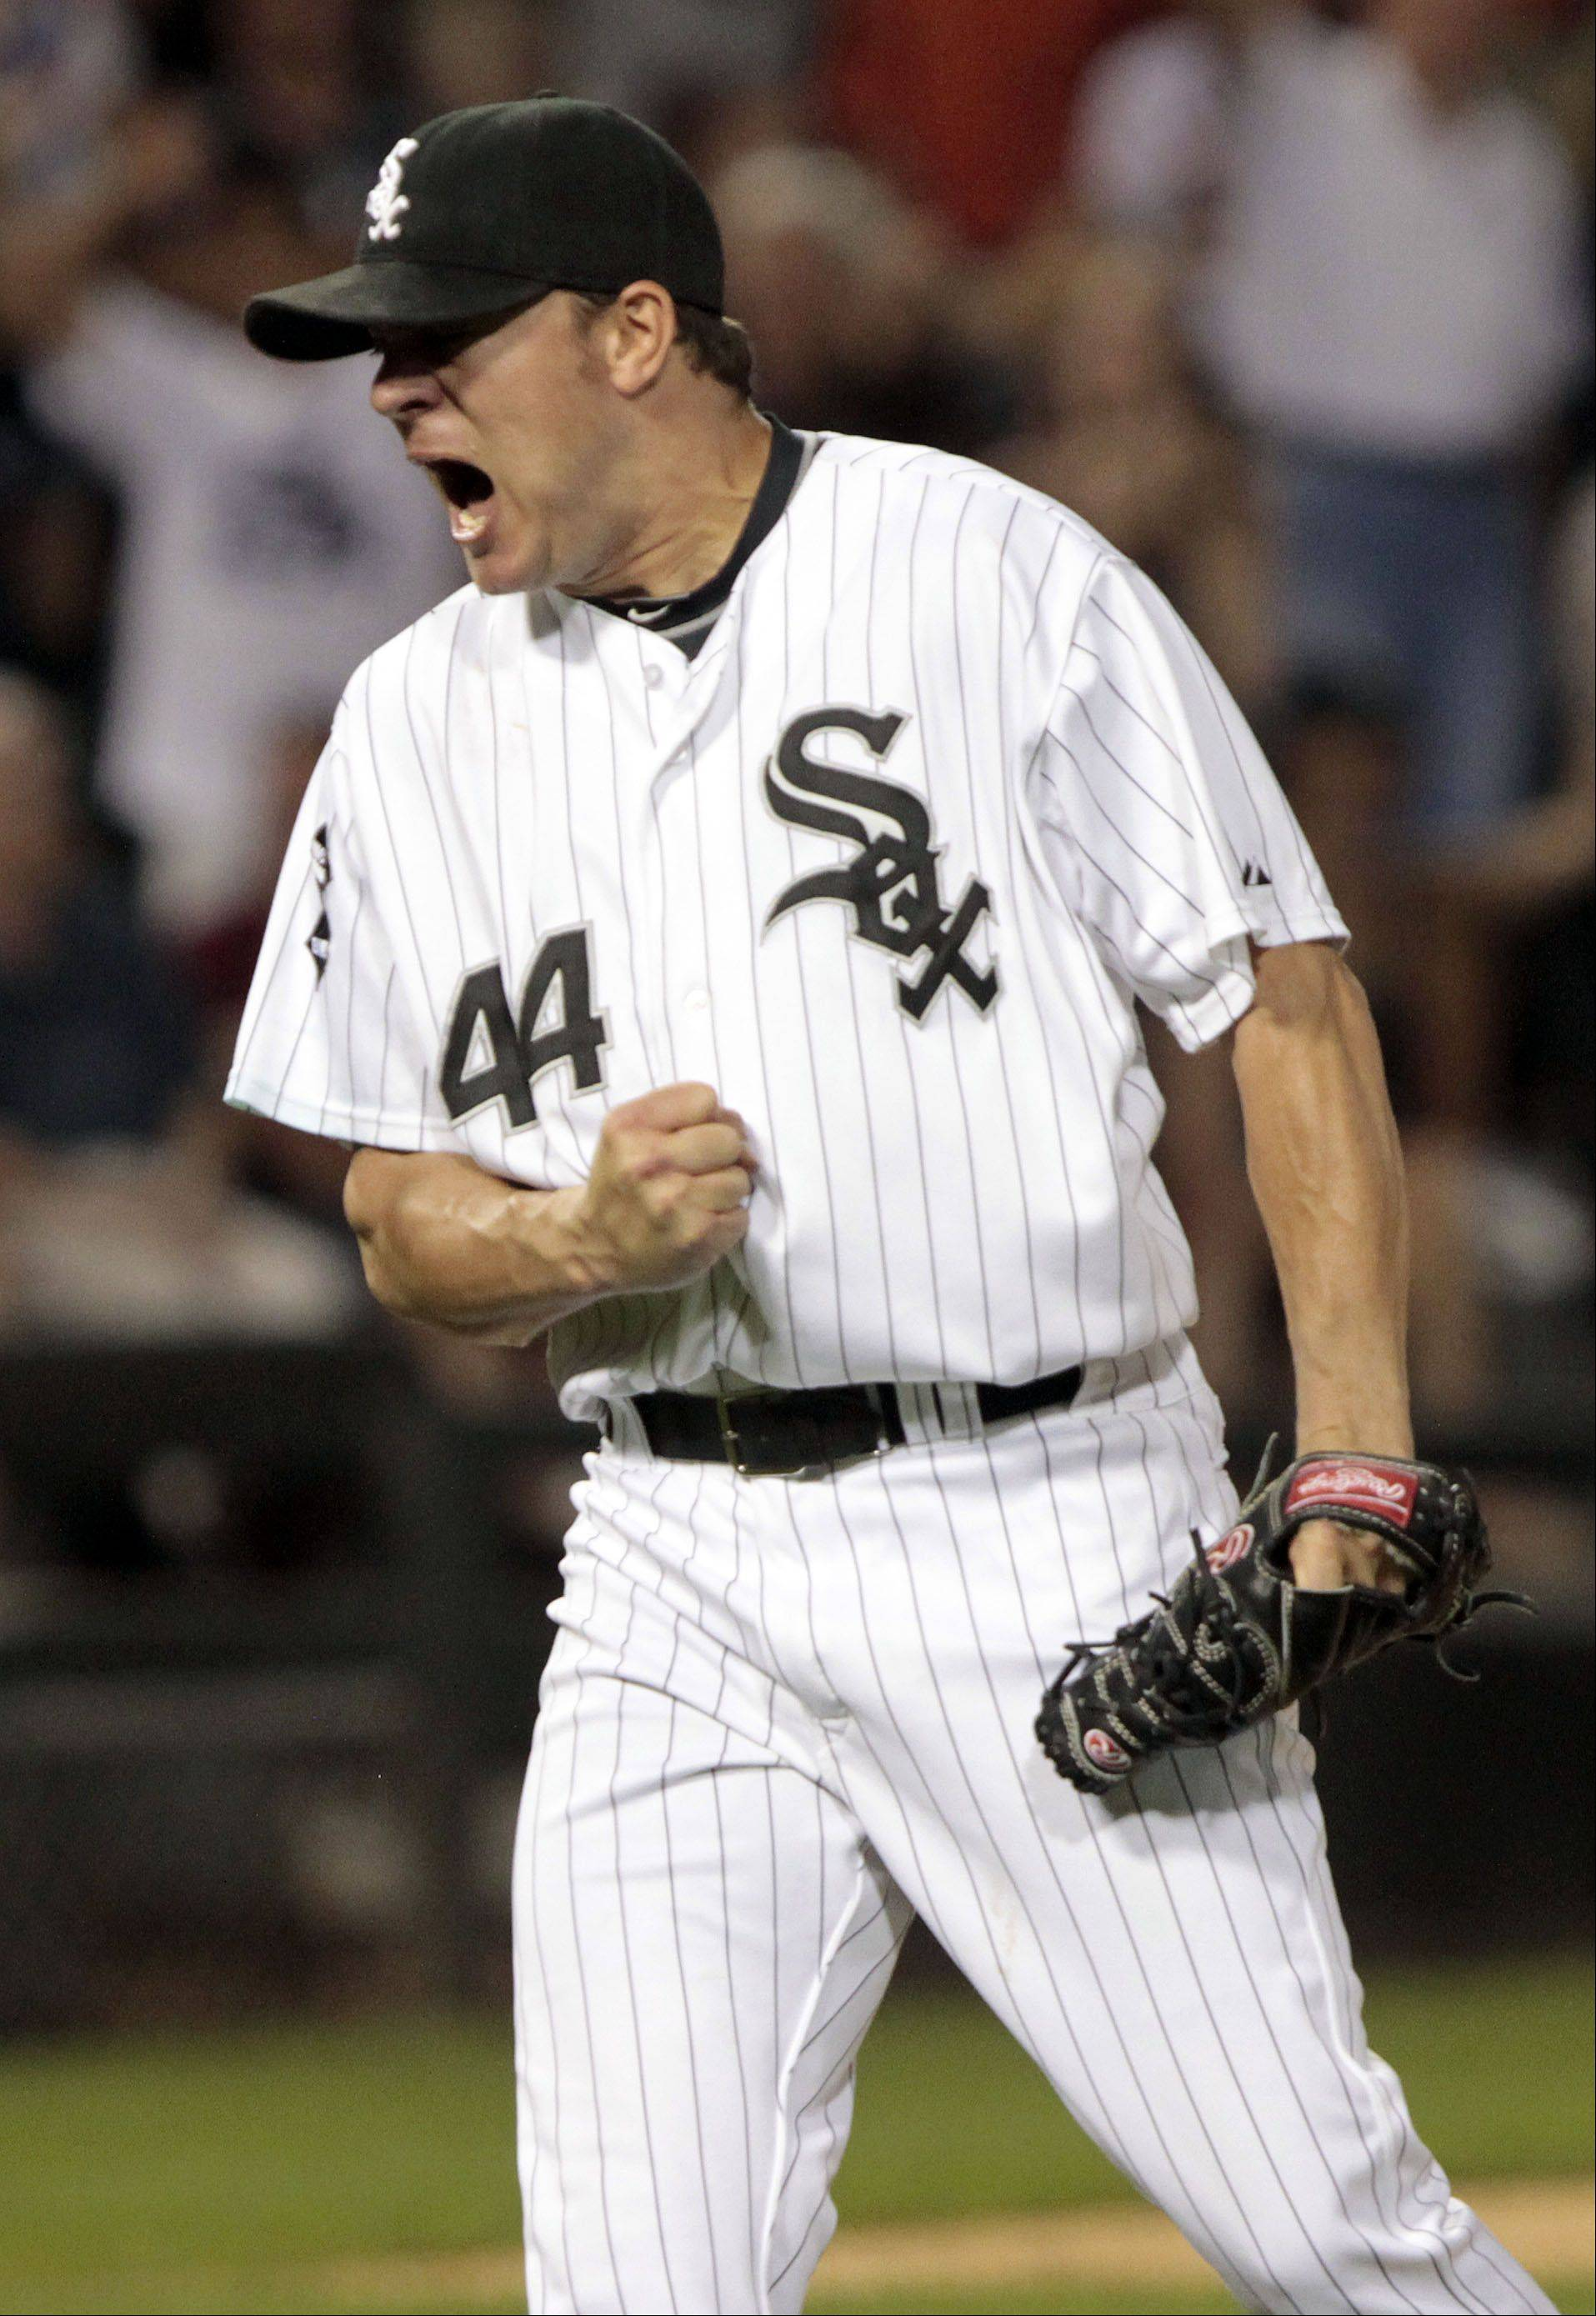 Starting pitcher Jake Peavy's two-year contract extension is a good deal for the White Sox, according to Scot Gregor.